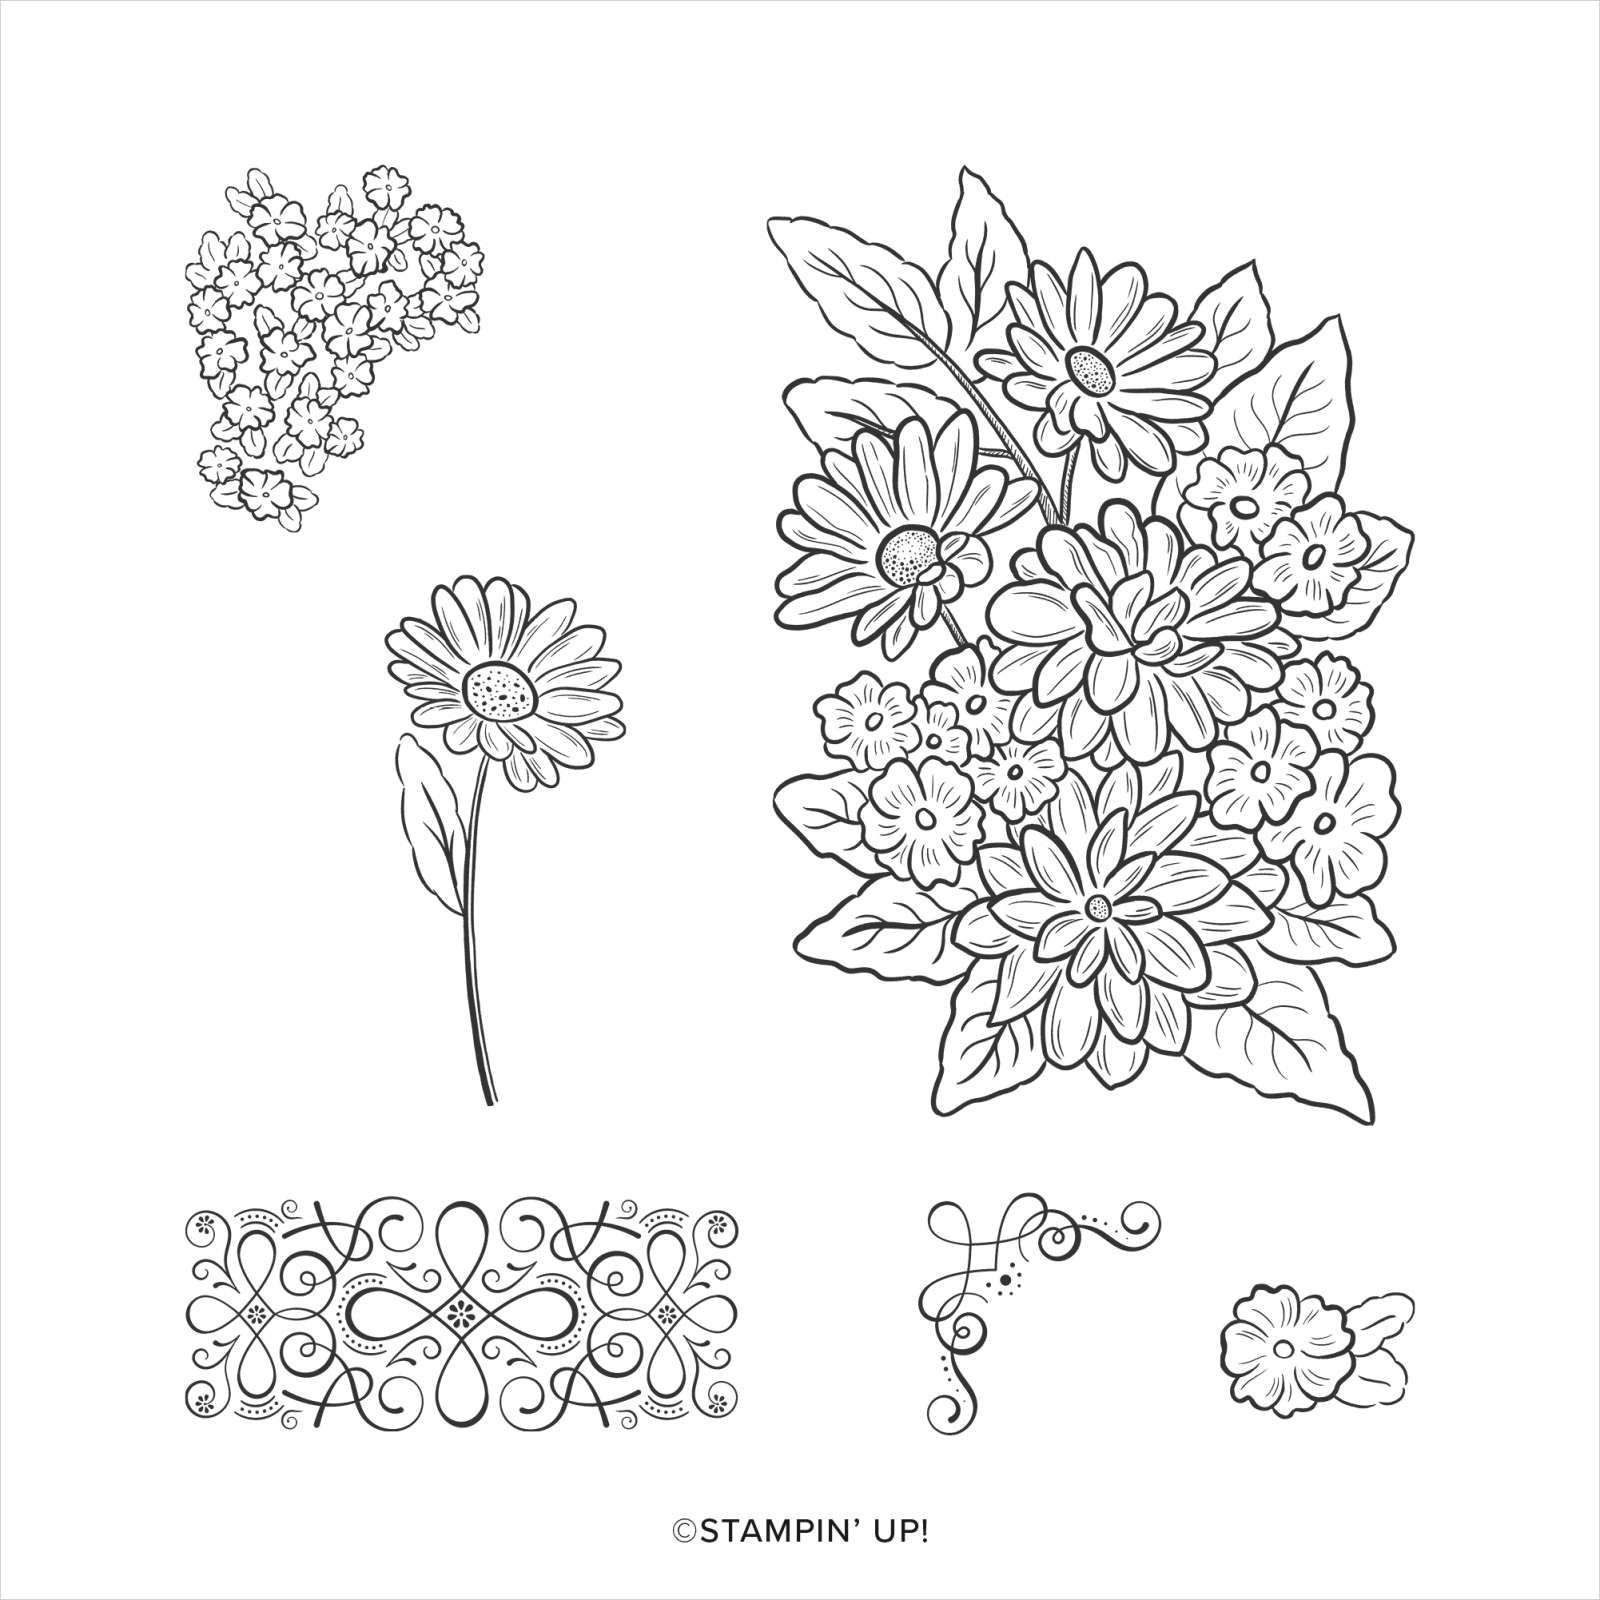 152572 Ornate style stampin up